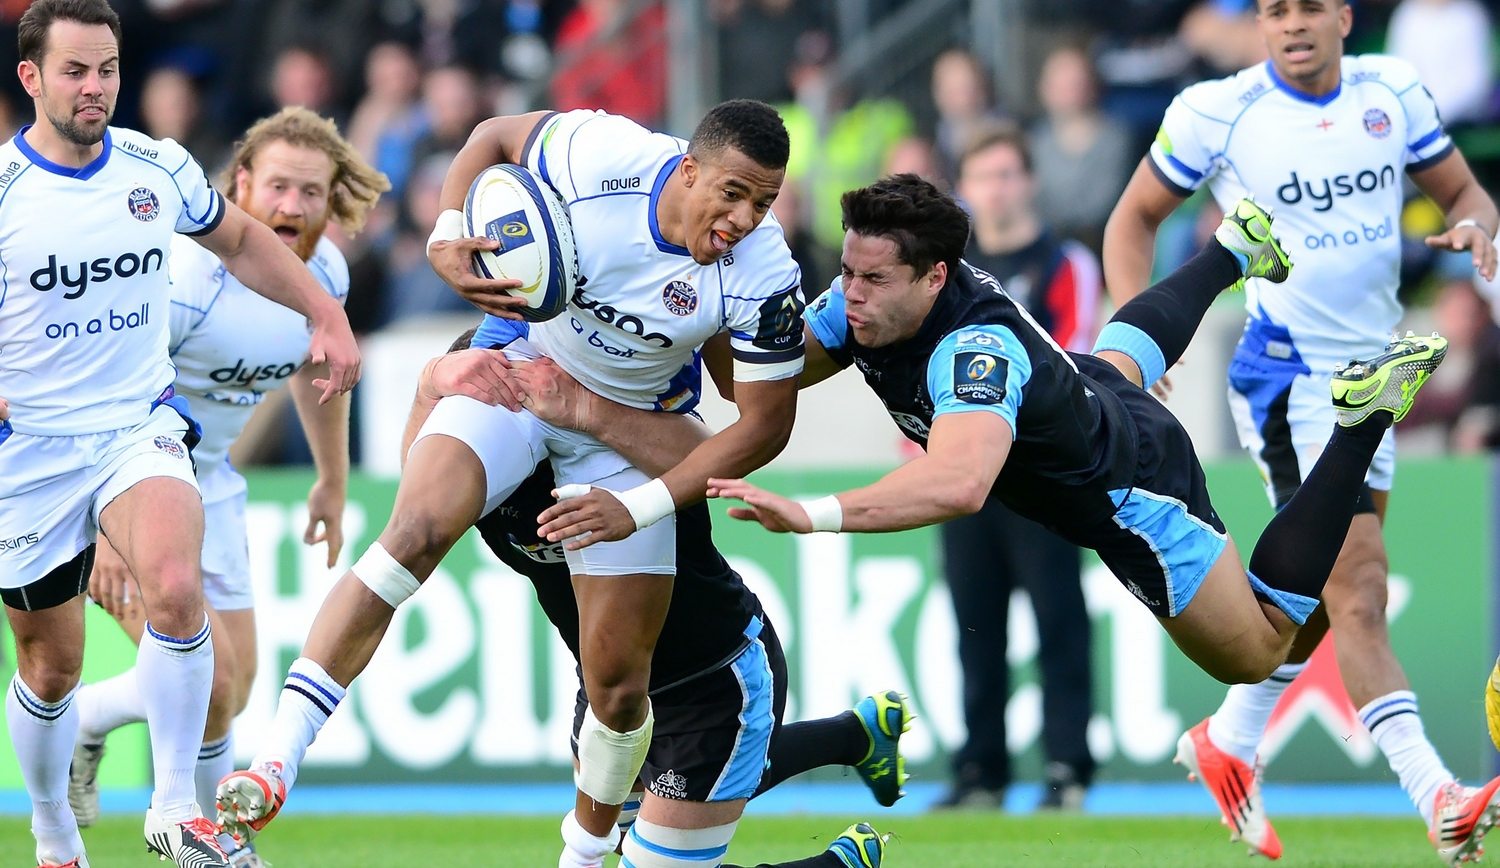 6bed24228ca European Professional Club Rugby | PREVIEW: Bath quartet hoping for ...